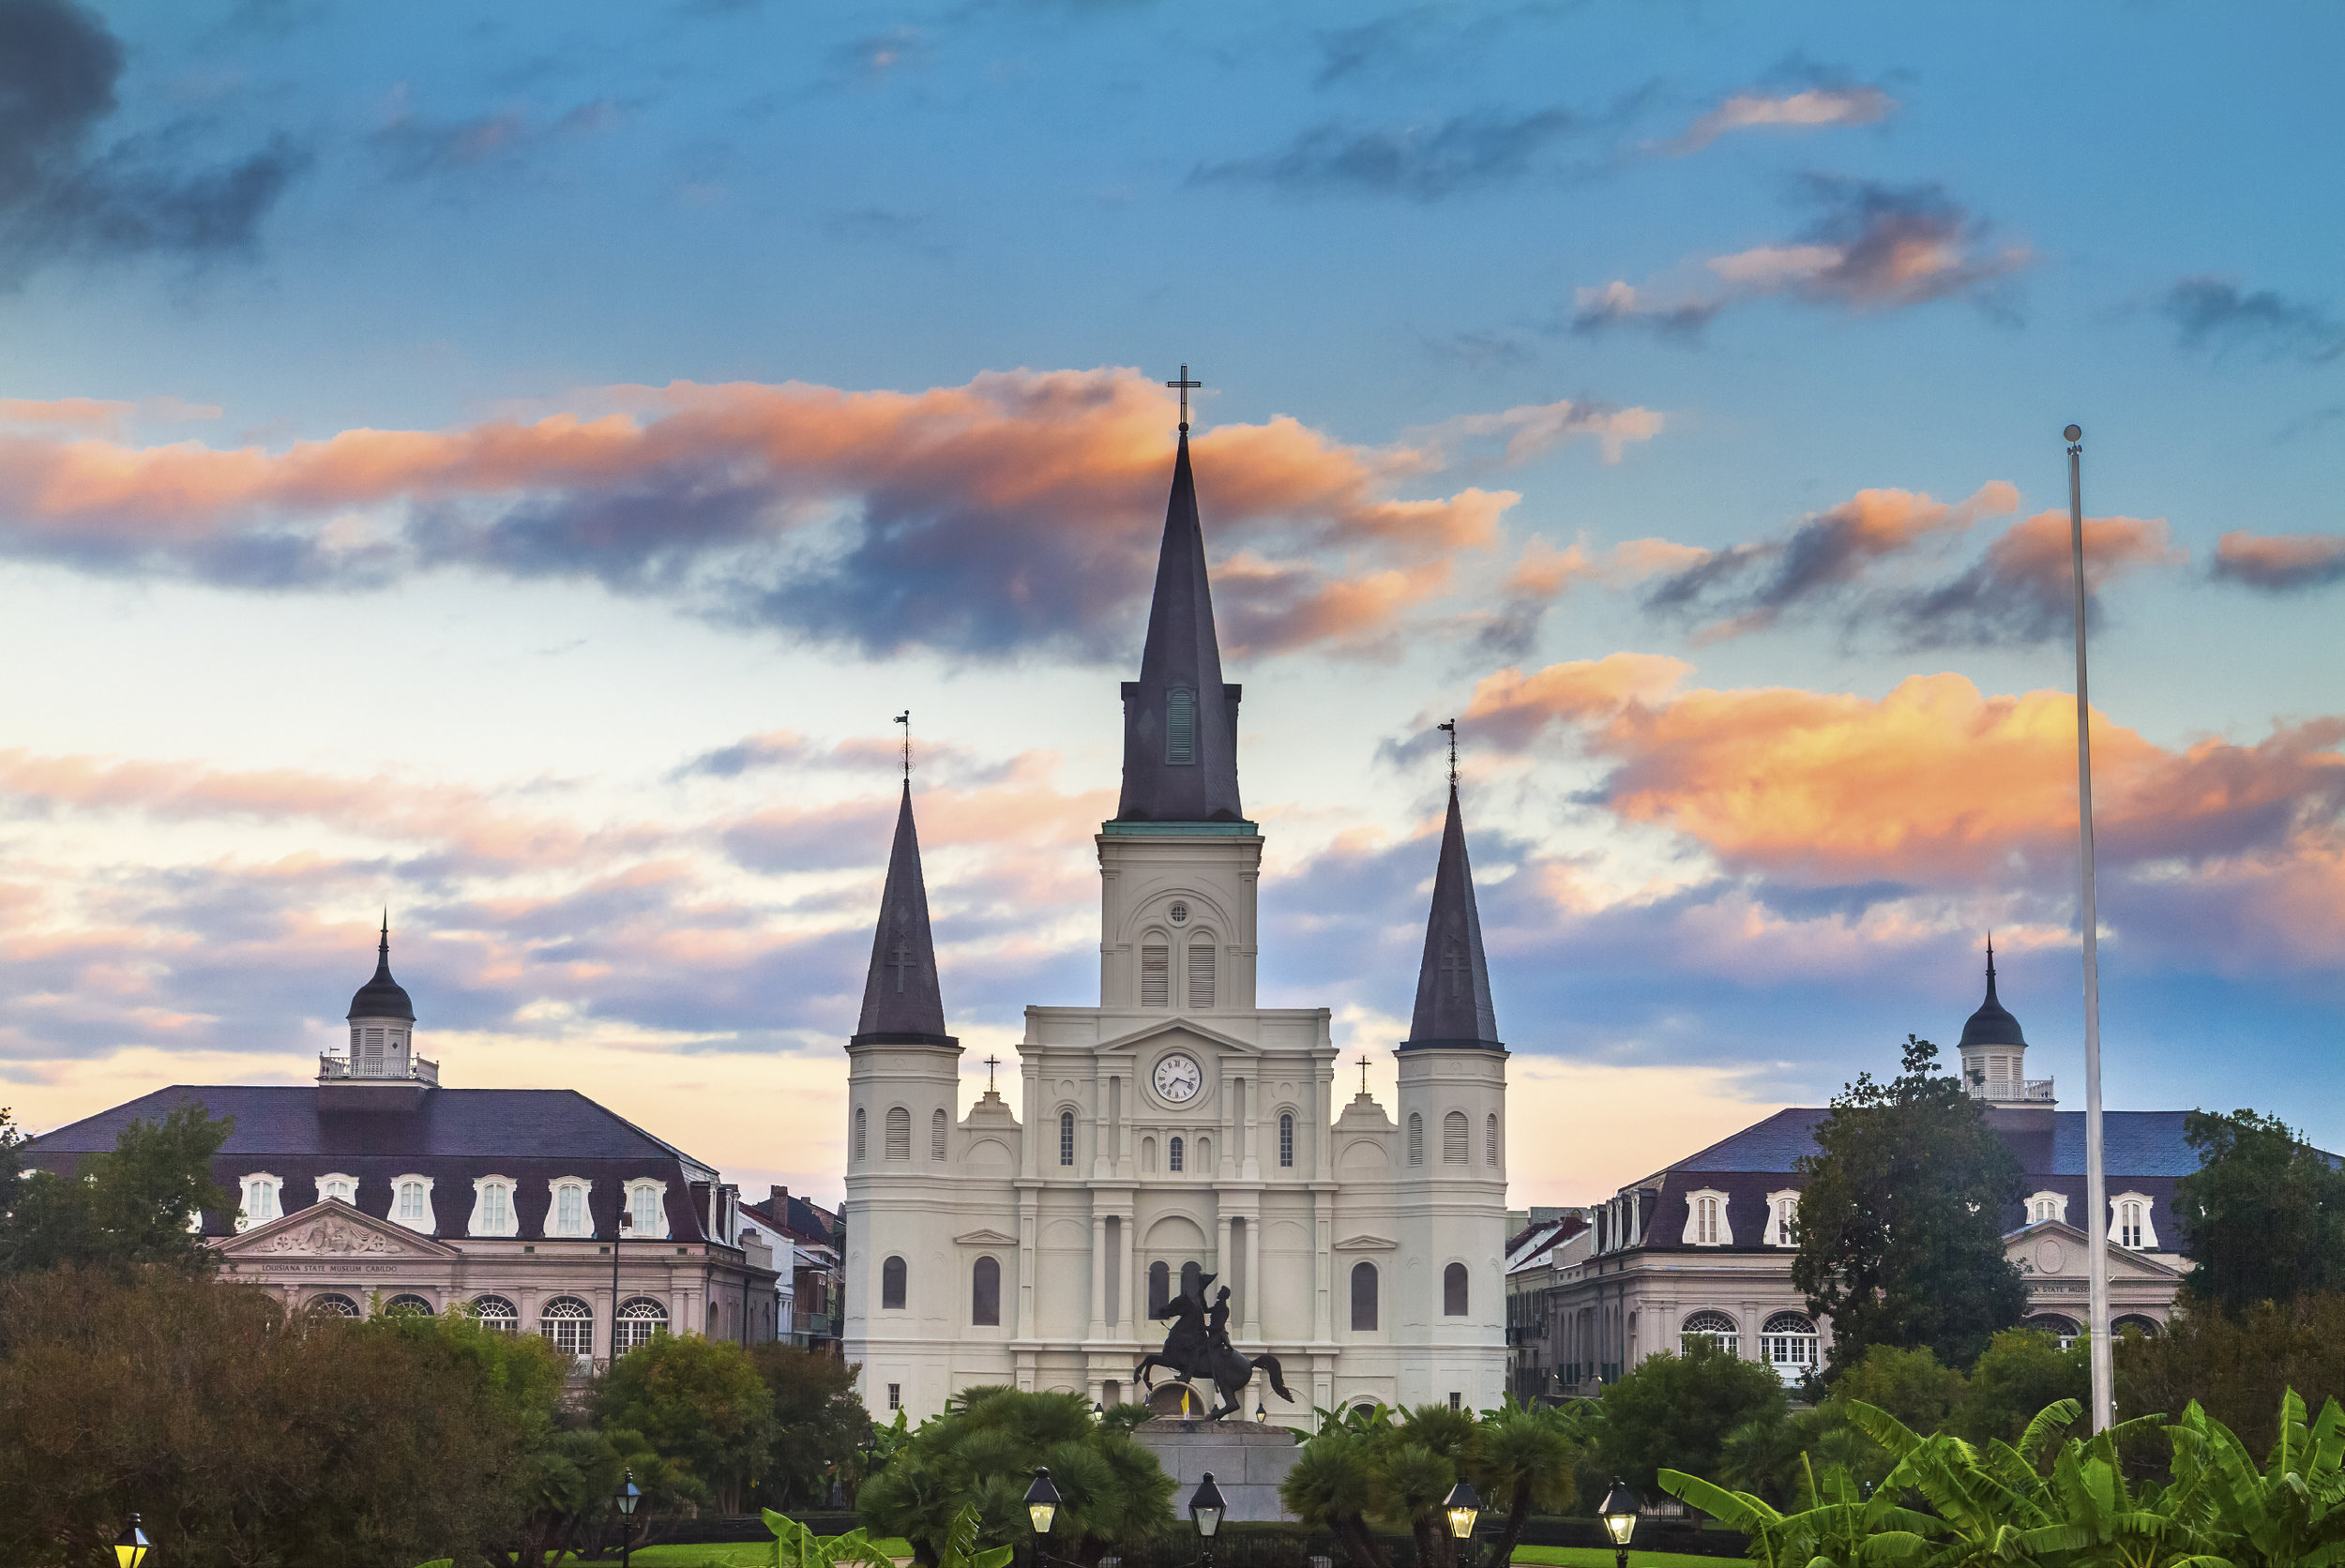 iStock_000029080896_Large (2) St. Louis Cathedral.jpg